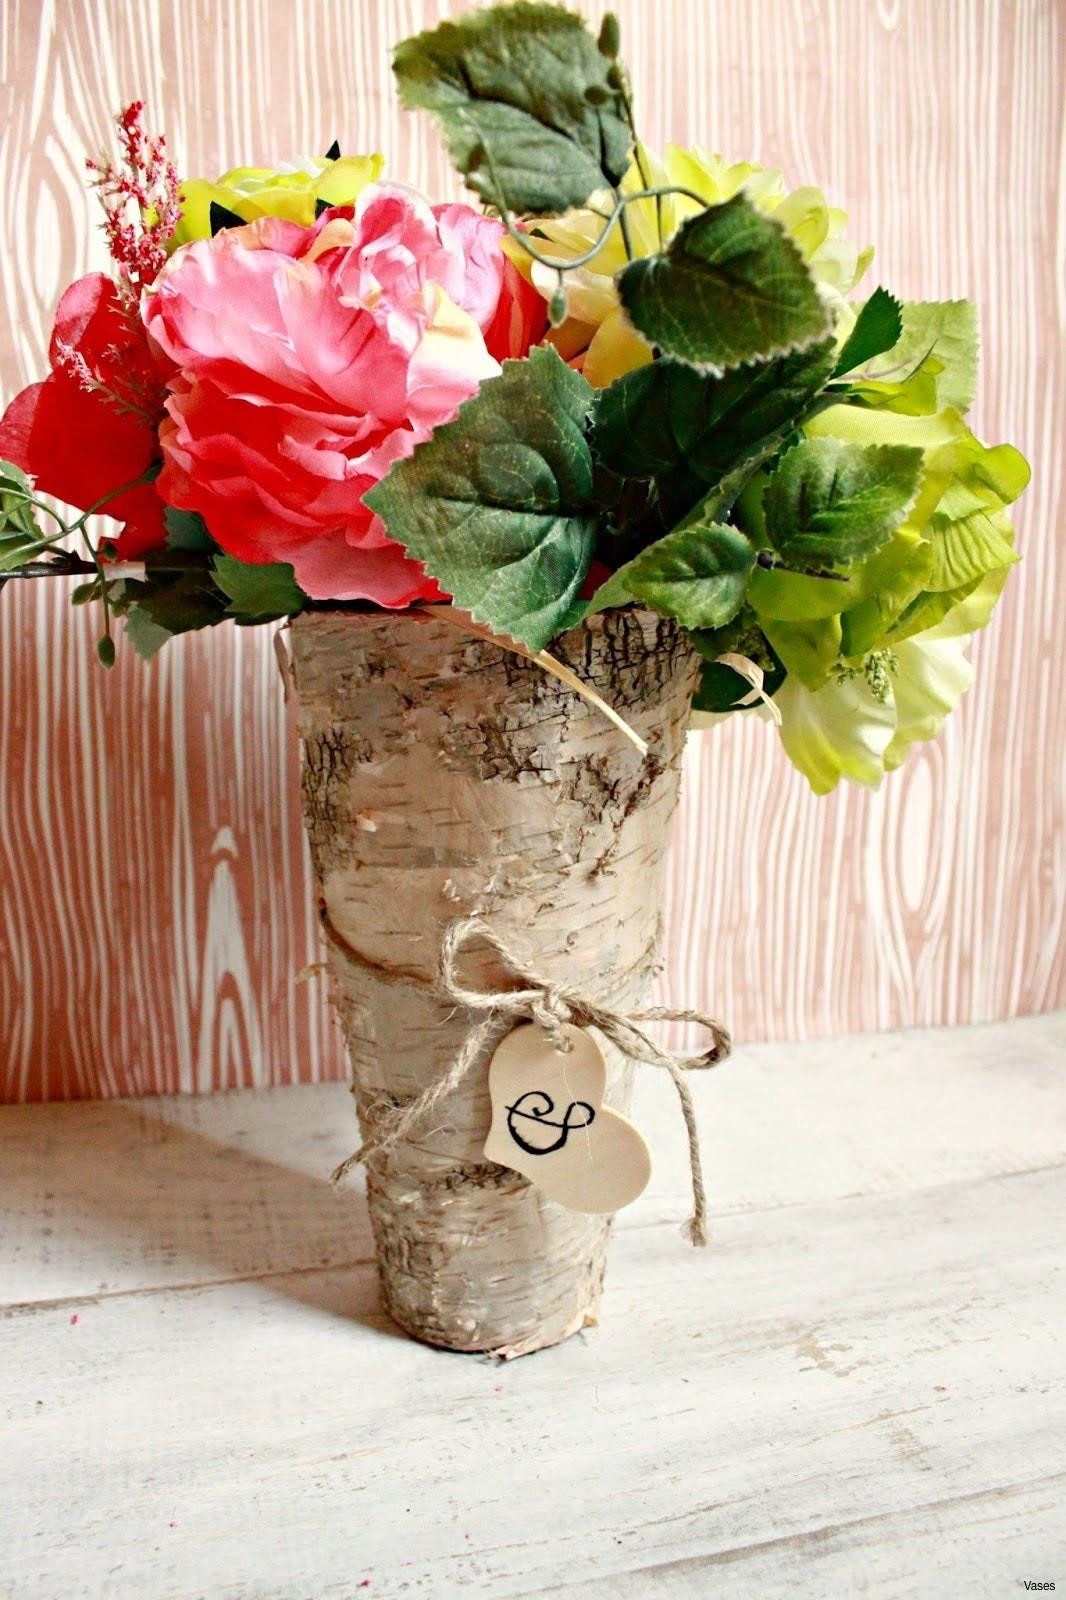 15 Nice Modge Podge Pictures On Glass Vase 2021 free download modge podge pictures on glass vase of 10 pictures on wood diy collections economyinnbeebe com pertaining to pictures on wood diy new wooden wall vase beautiful wooden wedding flowers h vases